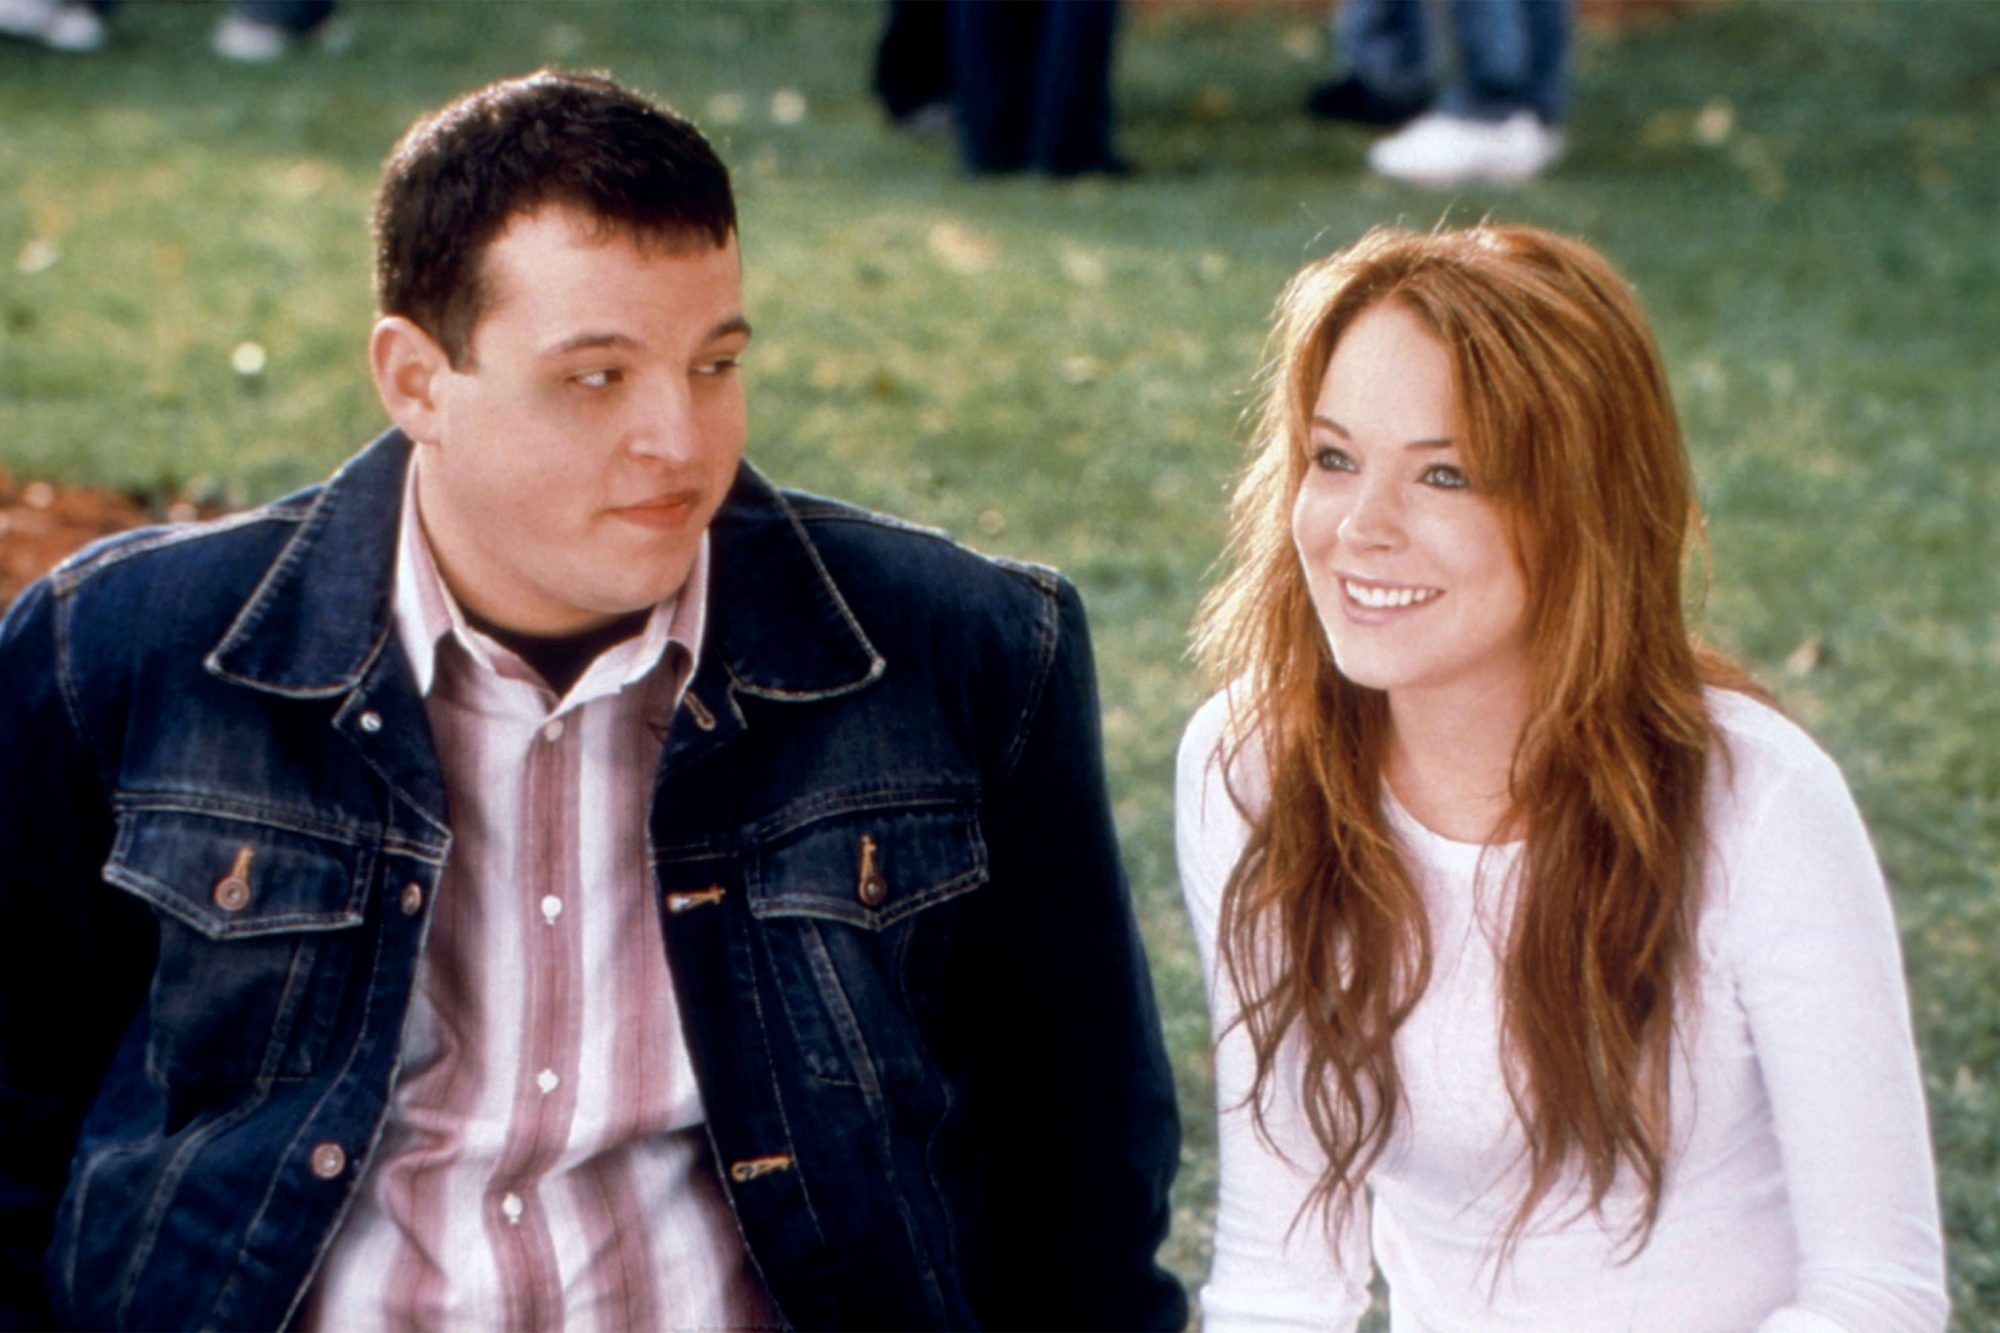 MEAN GIRLS, Daniel Franzese, Lindsay Lohan, 2004.©Paramount/courtesy Everett Collection